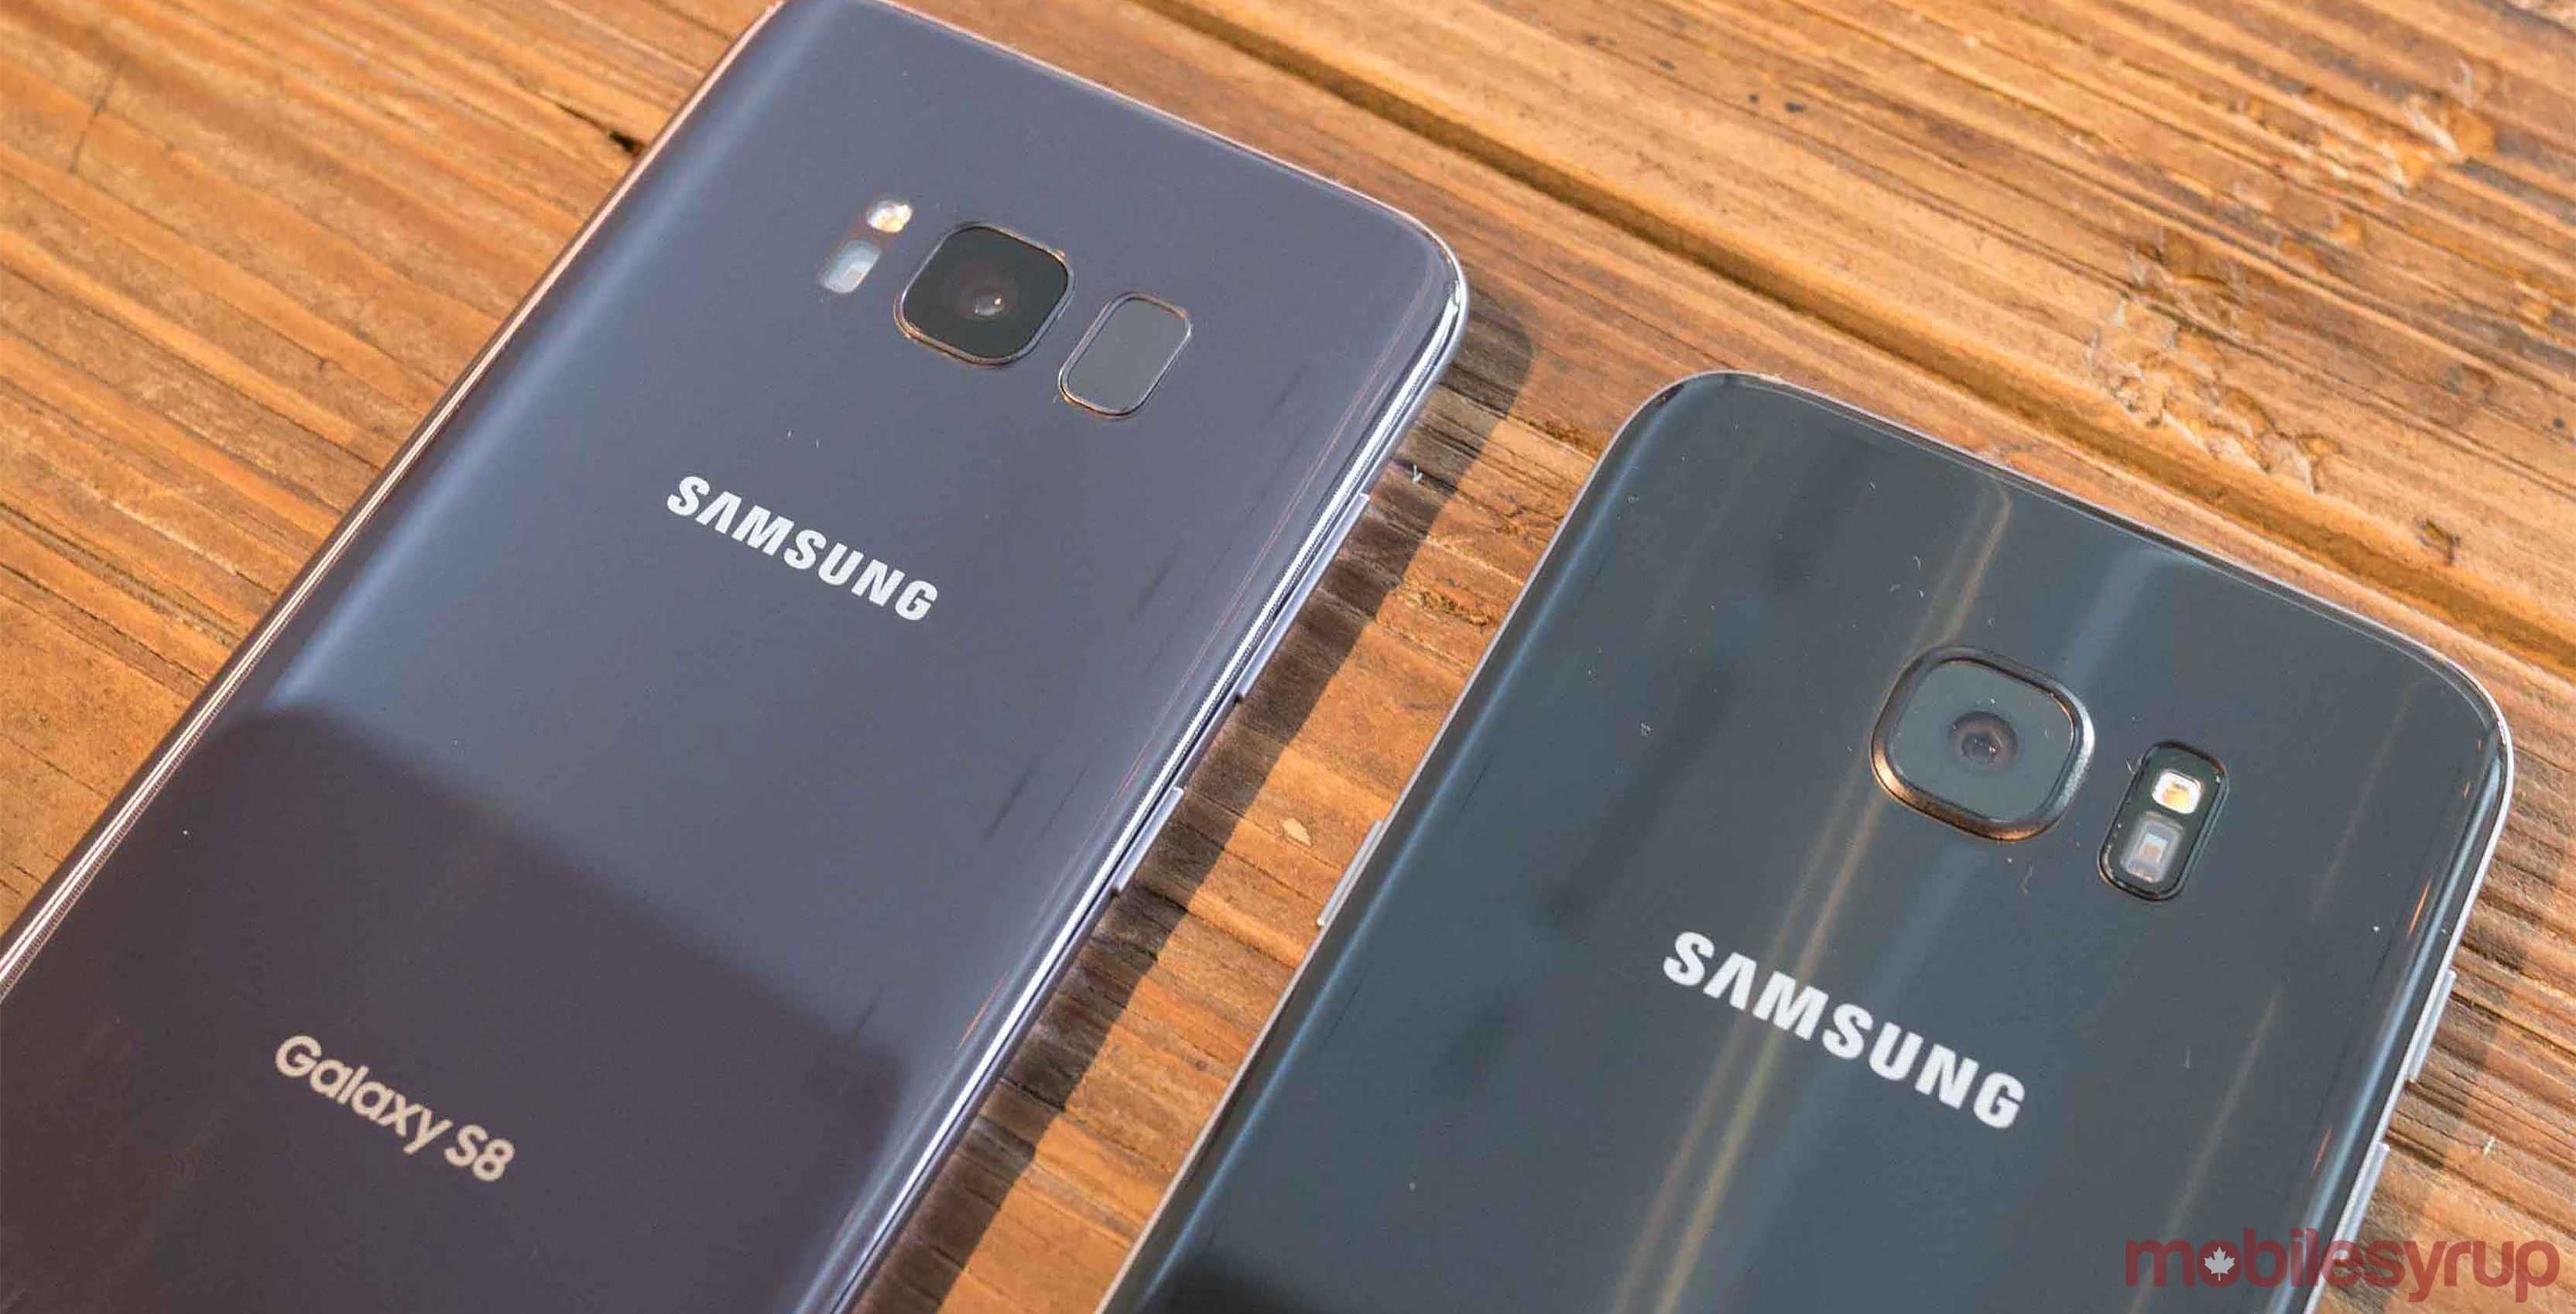 Comparison of Galaxy S8 and S7